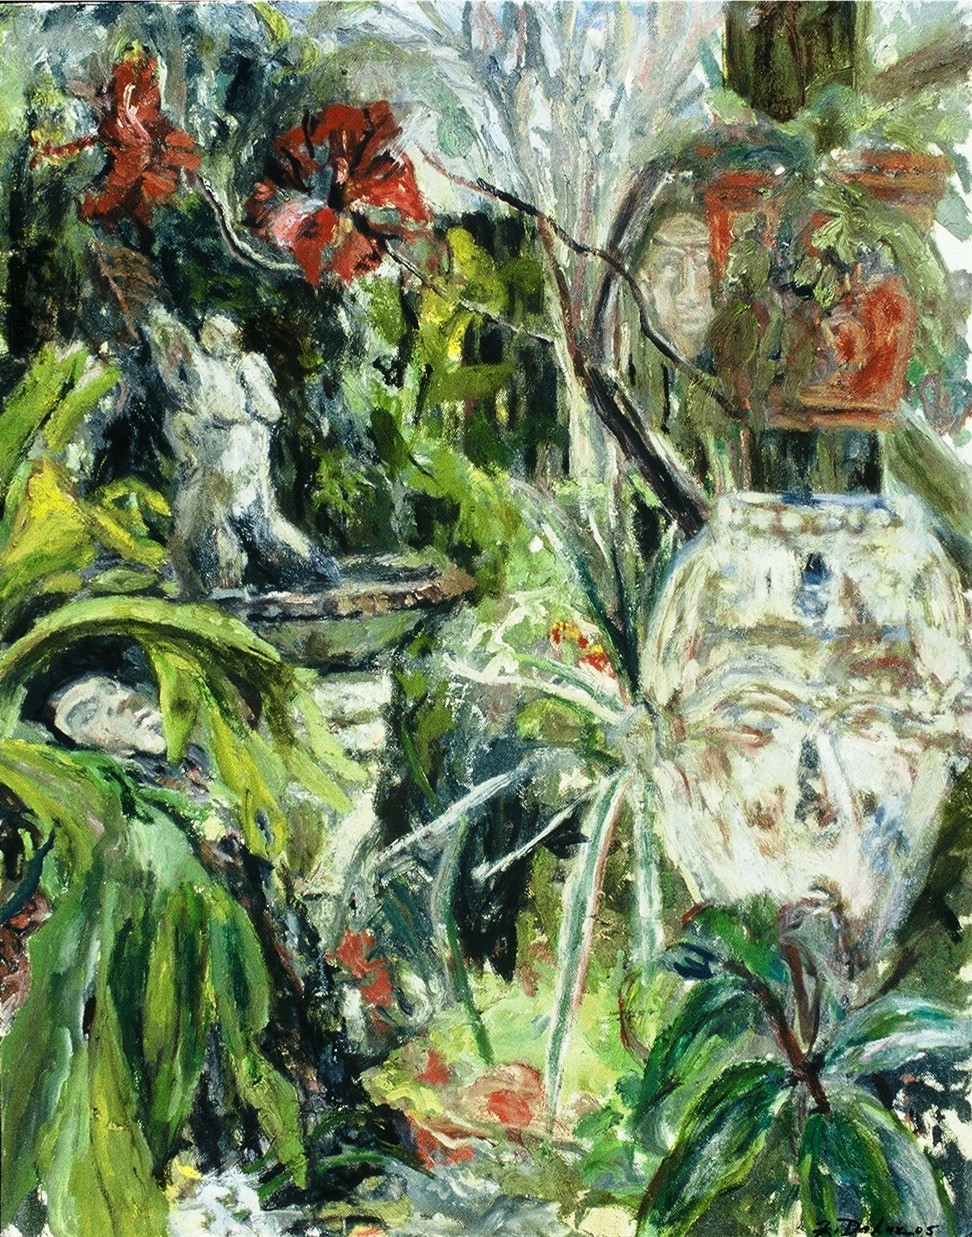 Zoanna's Garden-Oil on canvas-28h x 22w in